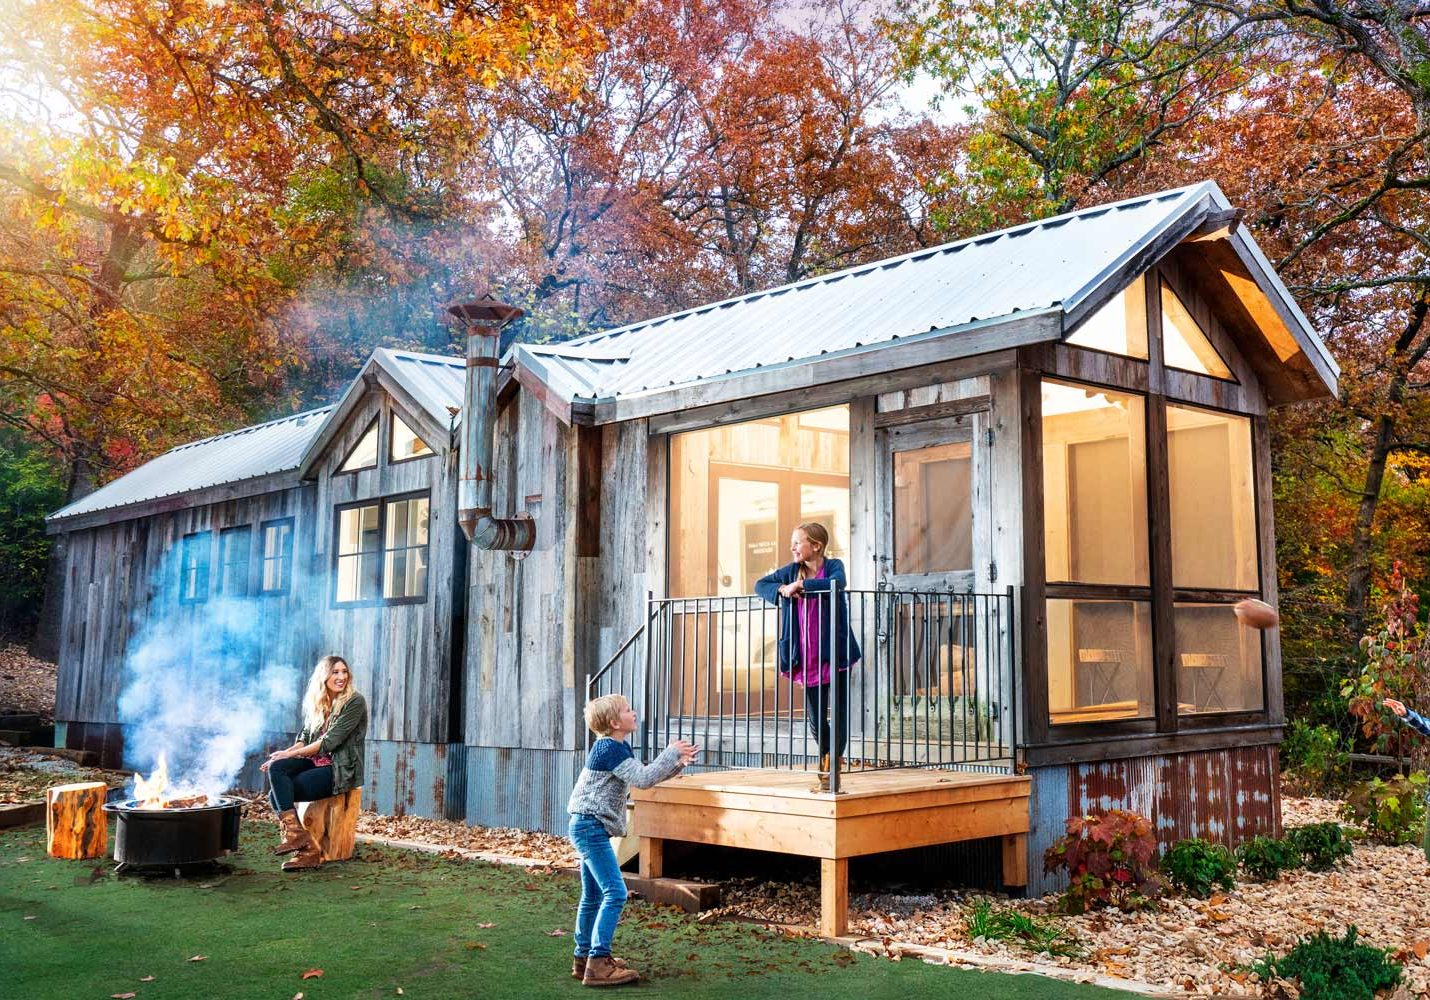 Family playing outside of their Camp Cabin at Camp Long Creek while glamping at Big Cedar Lodge